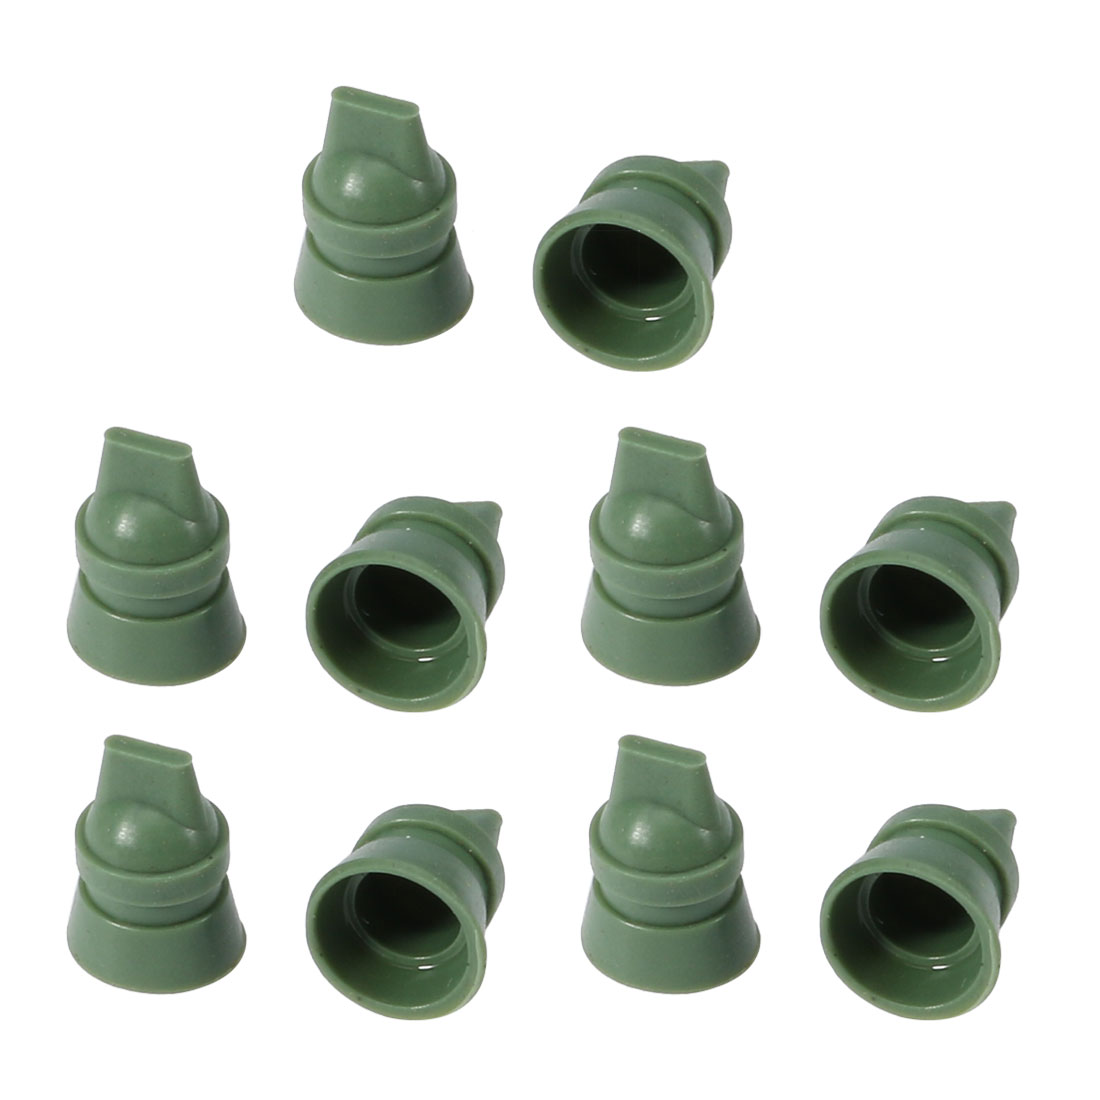 10pcs Replacement Parts Silicone Air Filter Cleaner Duckbill Valve Green